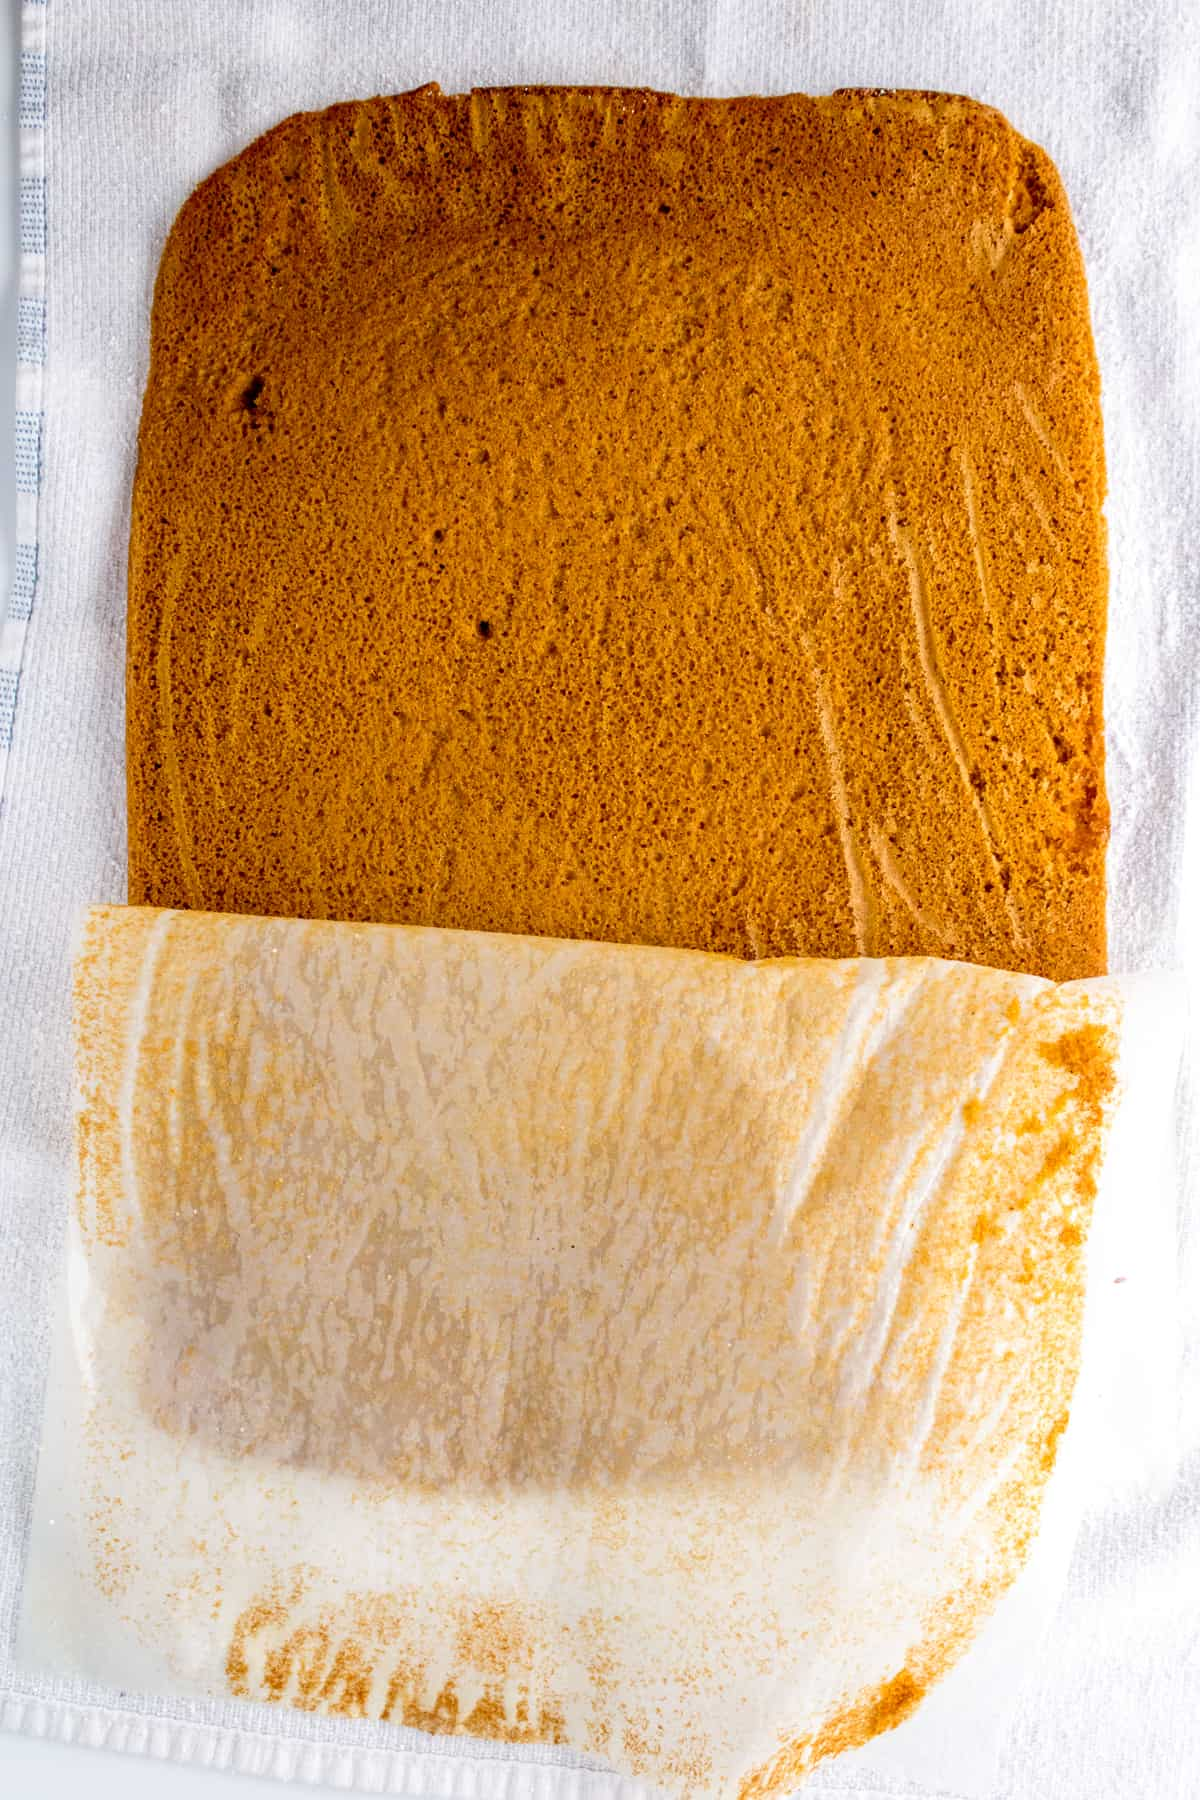 parchment paper being peeled off pumpkin cake